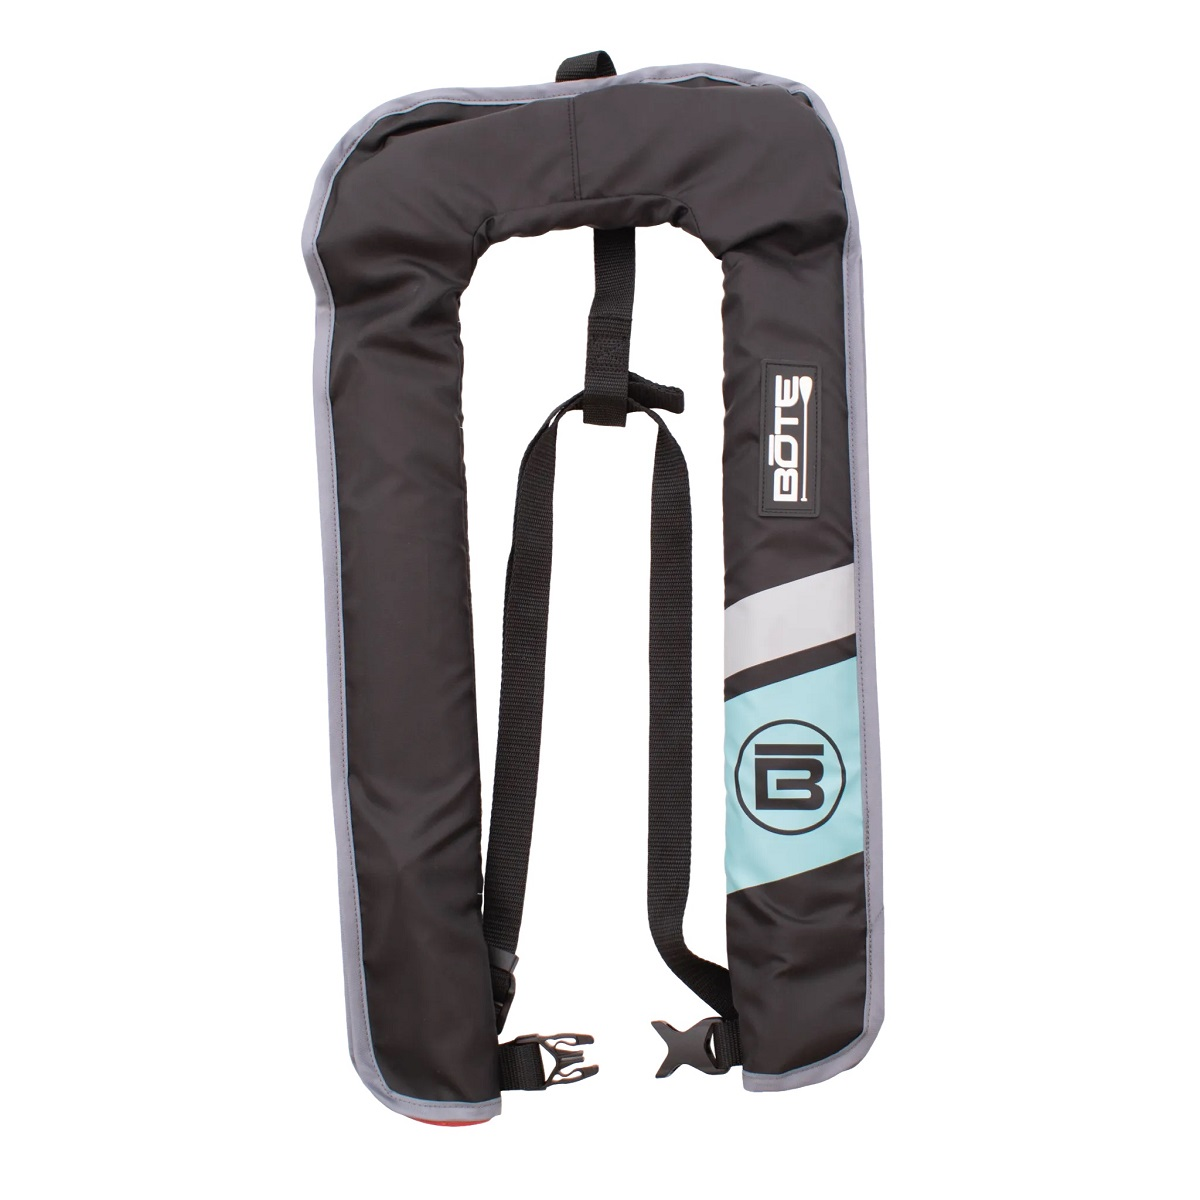 BOTE Inflatable Vest PFD - Front View